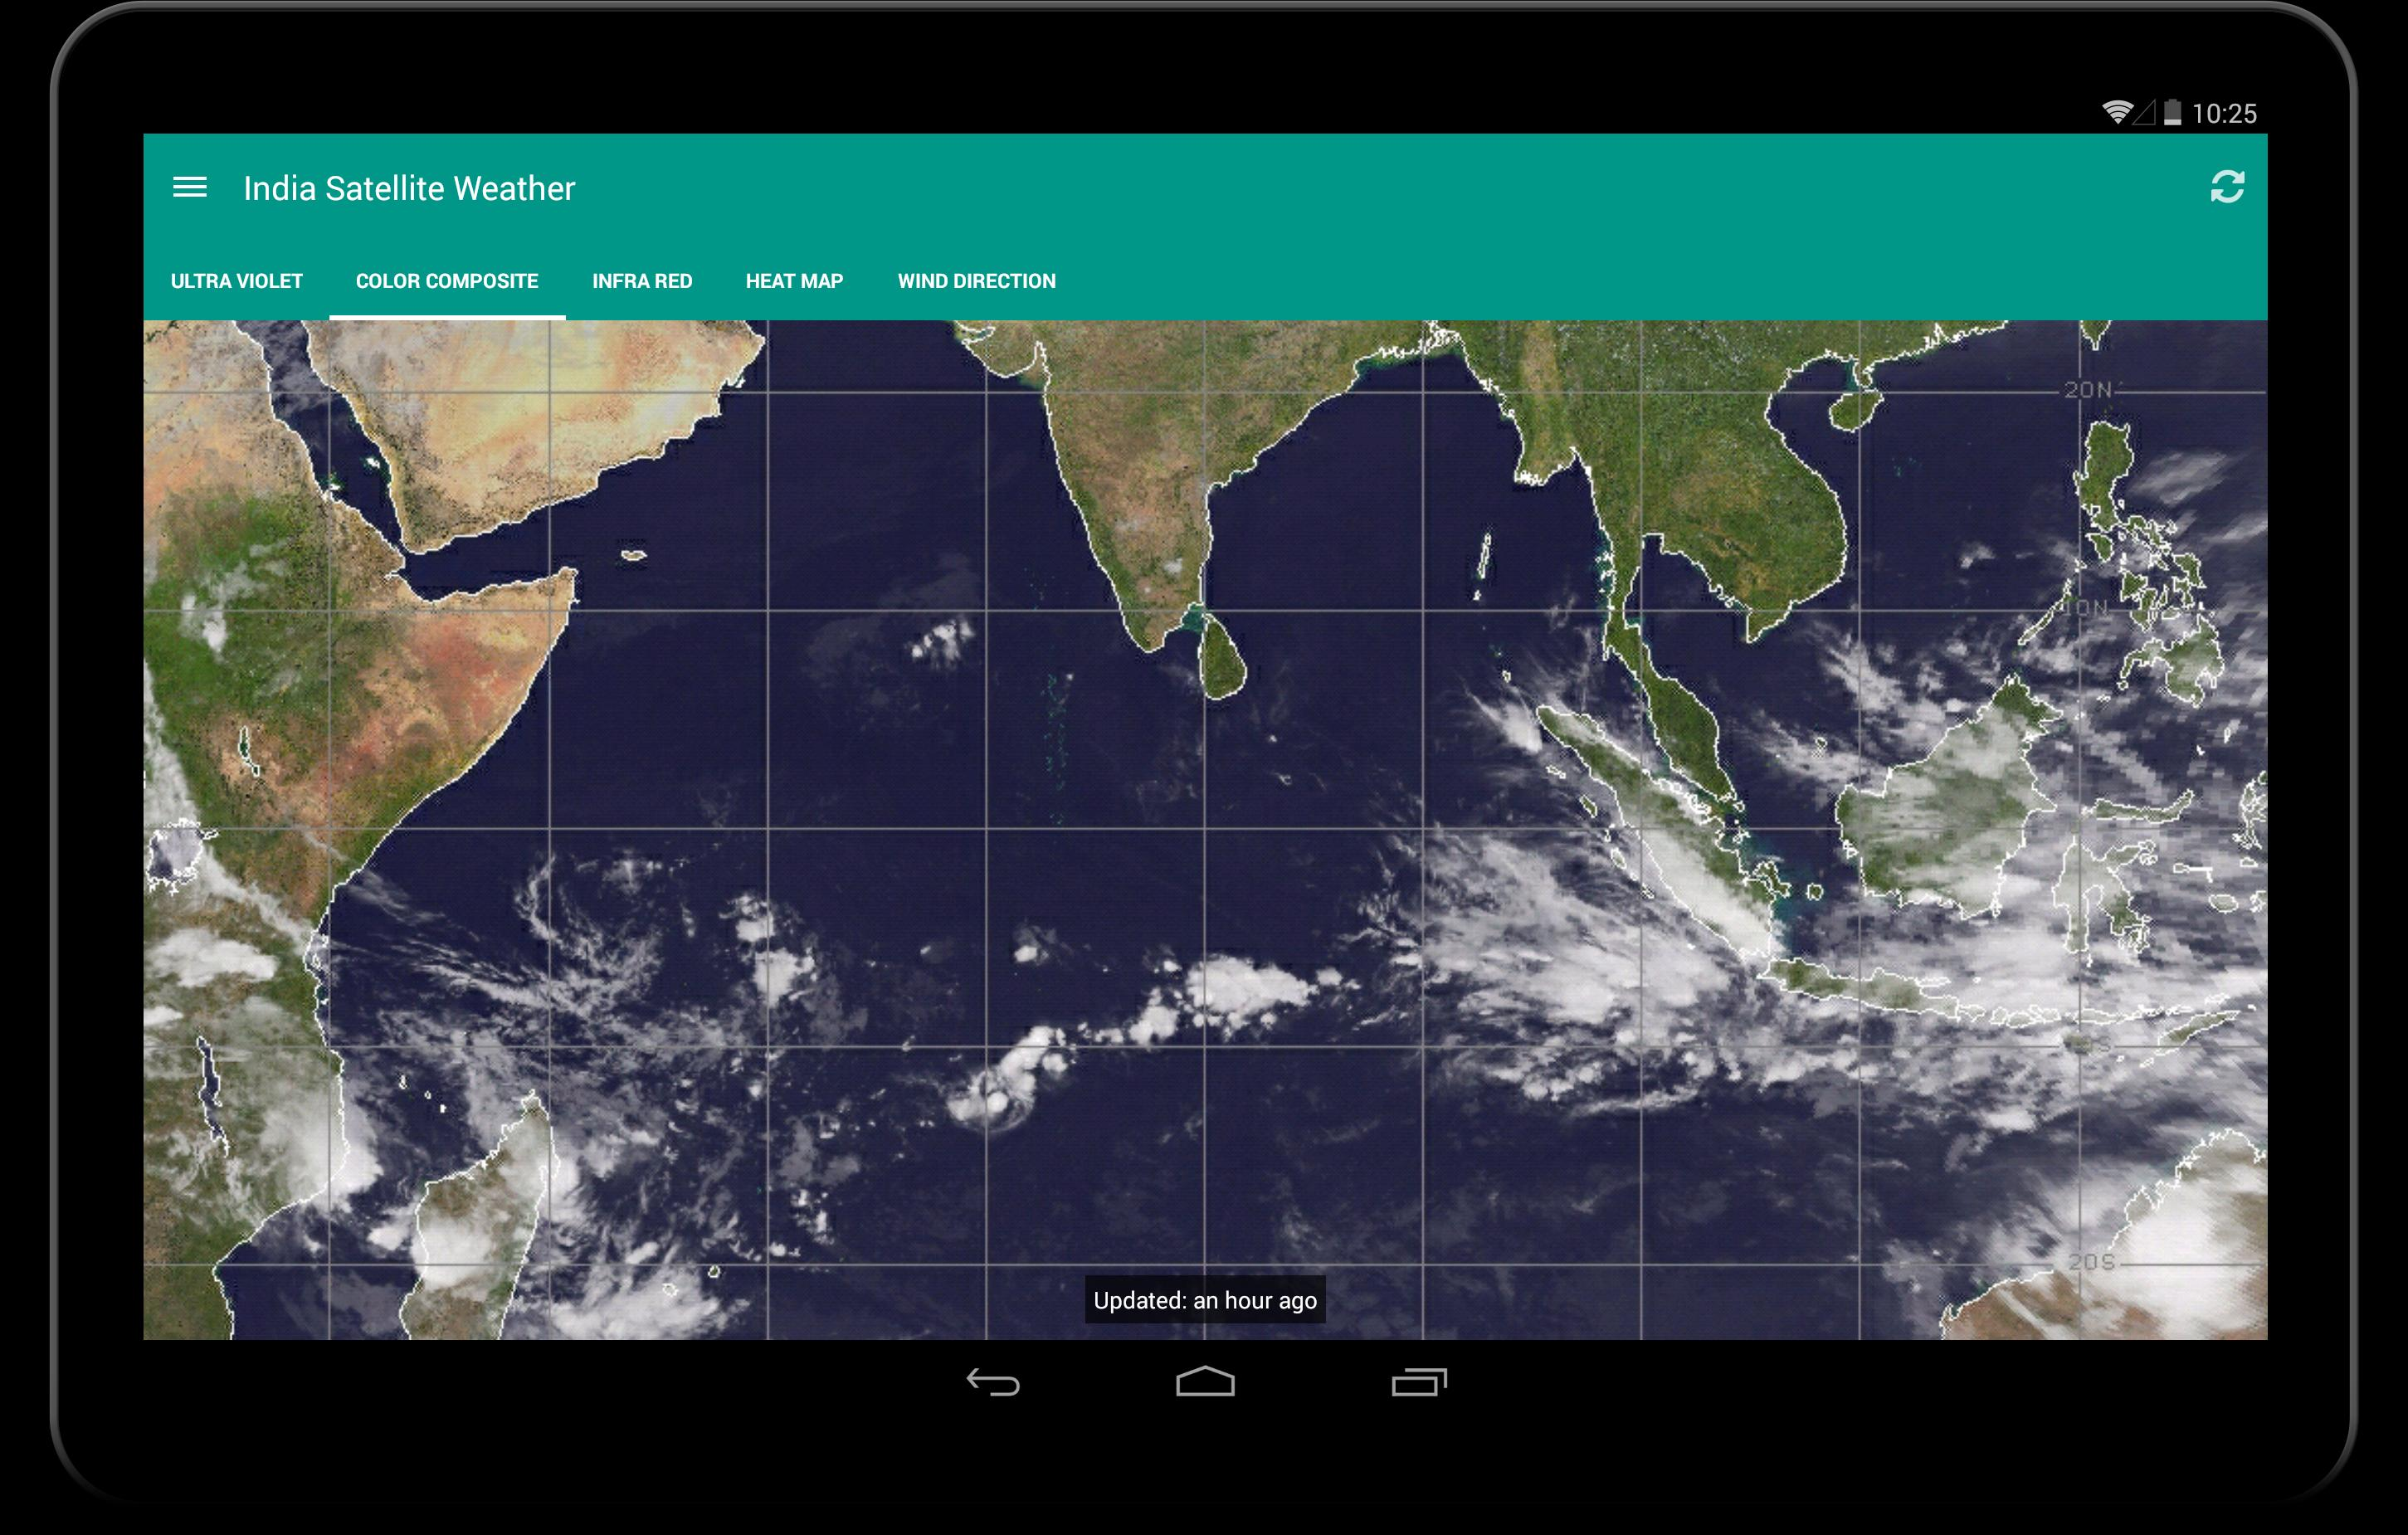 India Satellite Weather for Android - APK Download on satellite terrain map, weather balloon, asia satellite map, weather station, weather vane, satellite map of ocean currents, satellite middle east map, satellite travel map, pacific satellite map, satellite and radar over cancun, mountain satellite map, new zealand satellite map, defense weather satellite system, satellite geological map, satellite map of united states, automatic weather station, earth observation satellite, live satellite map, satellite map of an address, satellite world map, geostationary orbit, geostationary operational environmental satellite, communications satellite, satellite map of india, weather radar, multi-functional transport satellite, satellite map of europe, satellite map of the caribbean, spy satellite, satellite australia map, satellite map of new mexico, satellite maps tennessee,